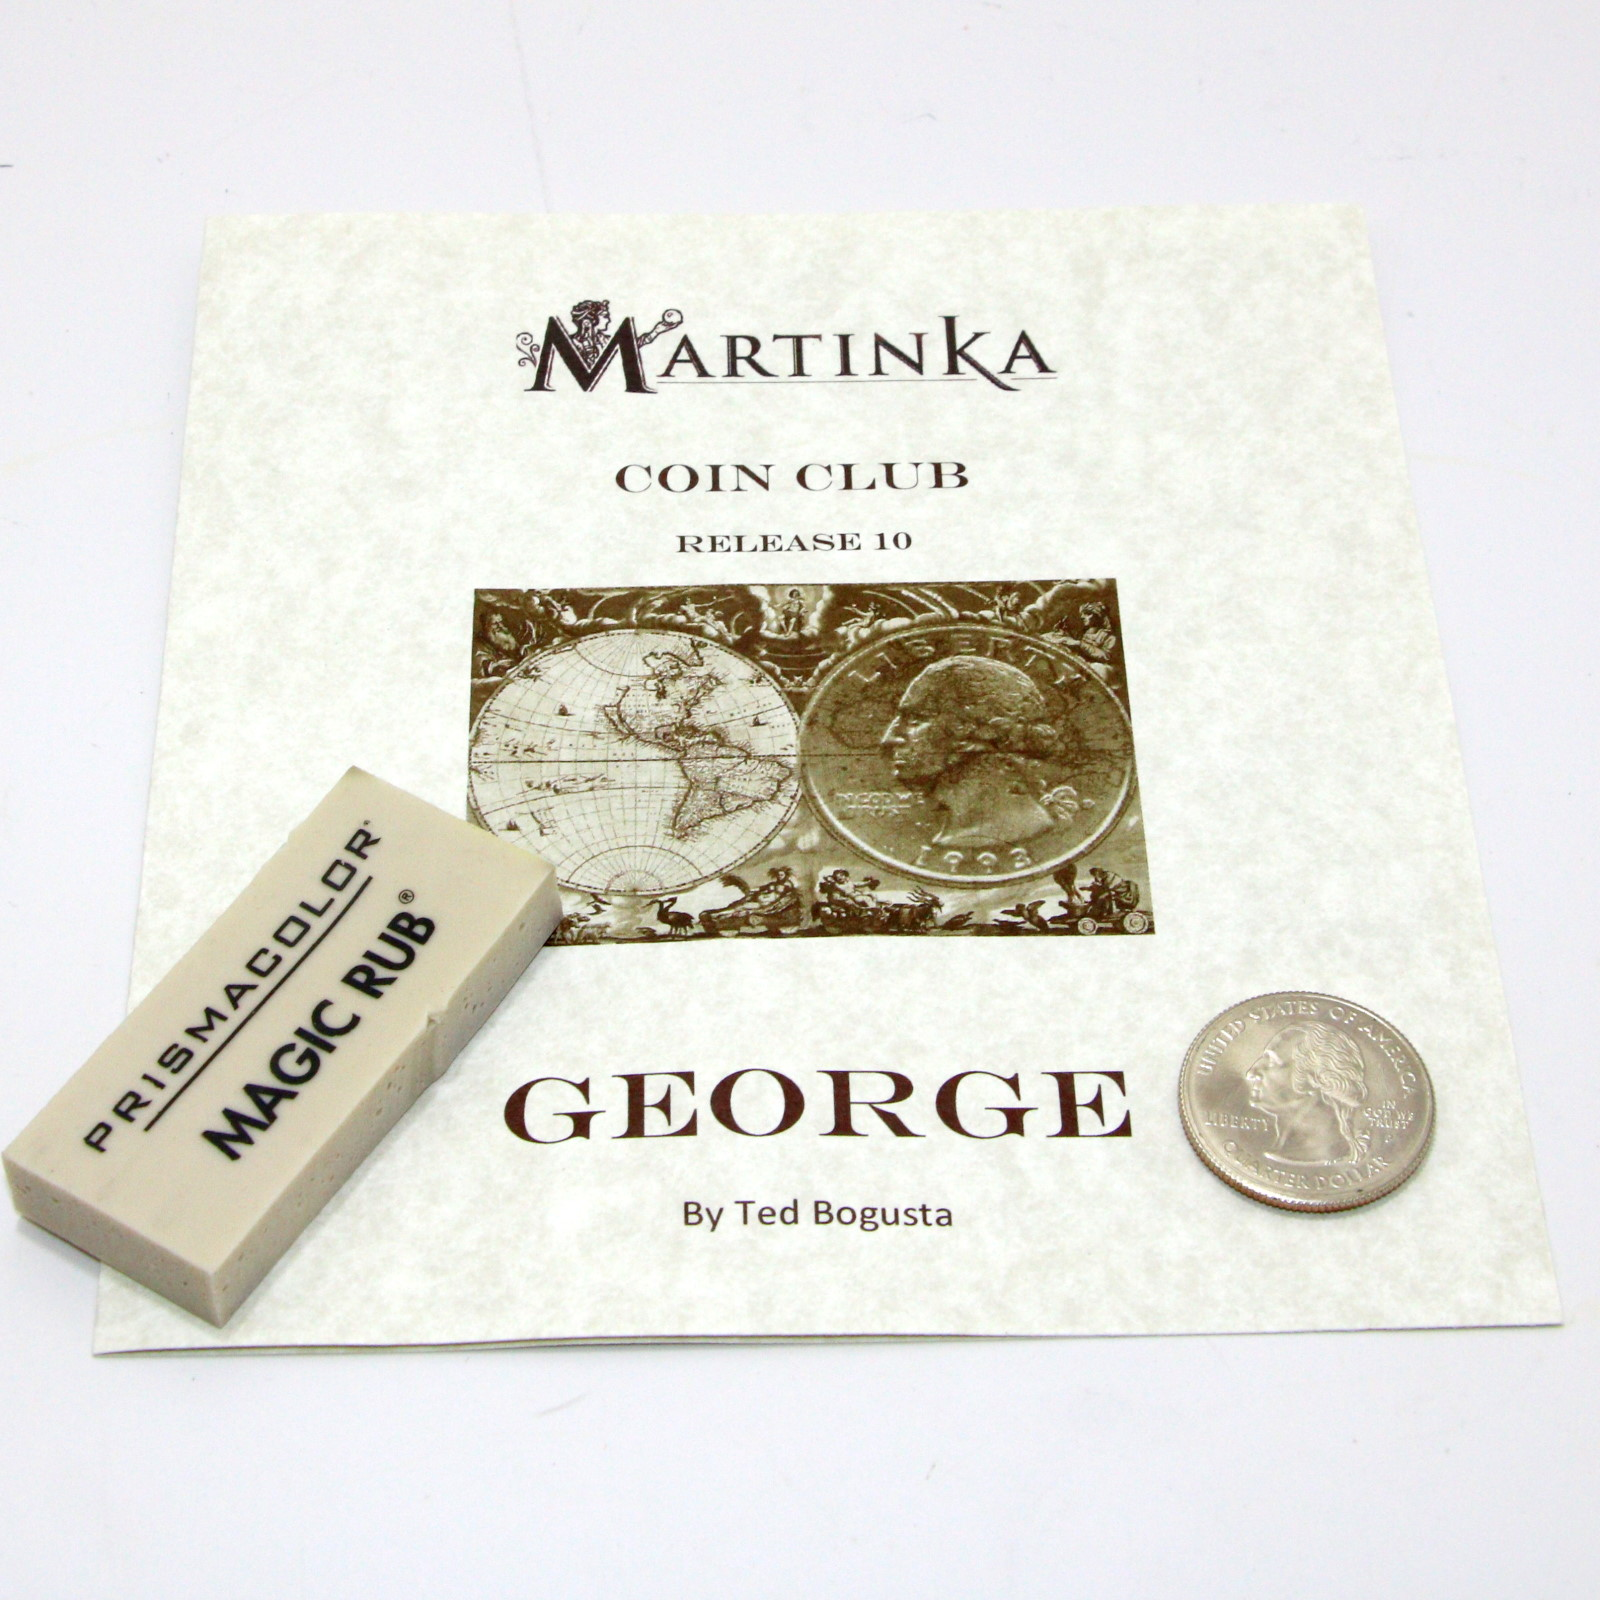 George Release 10 by Ted Bogusta